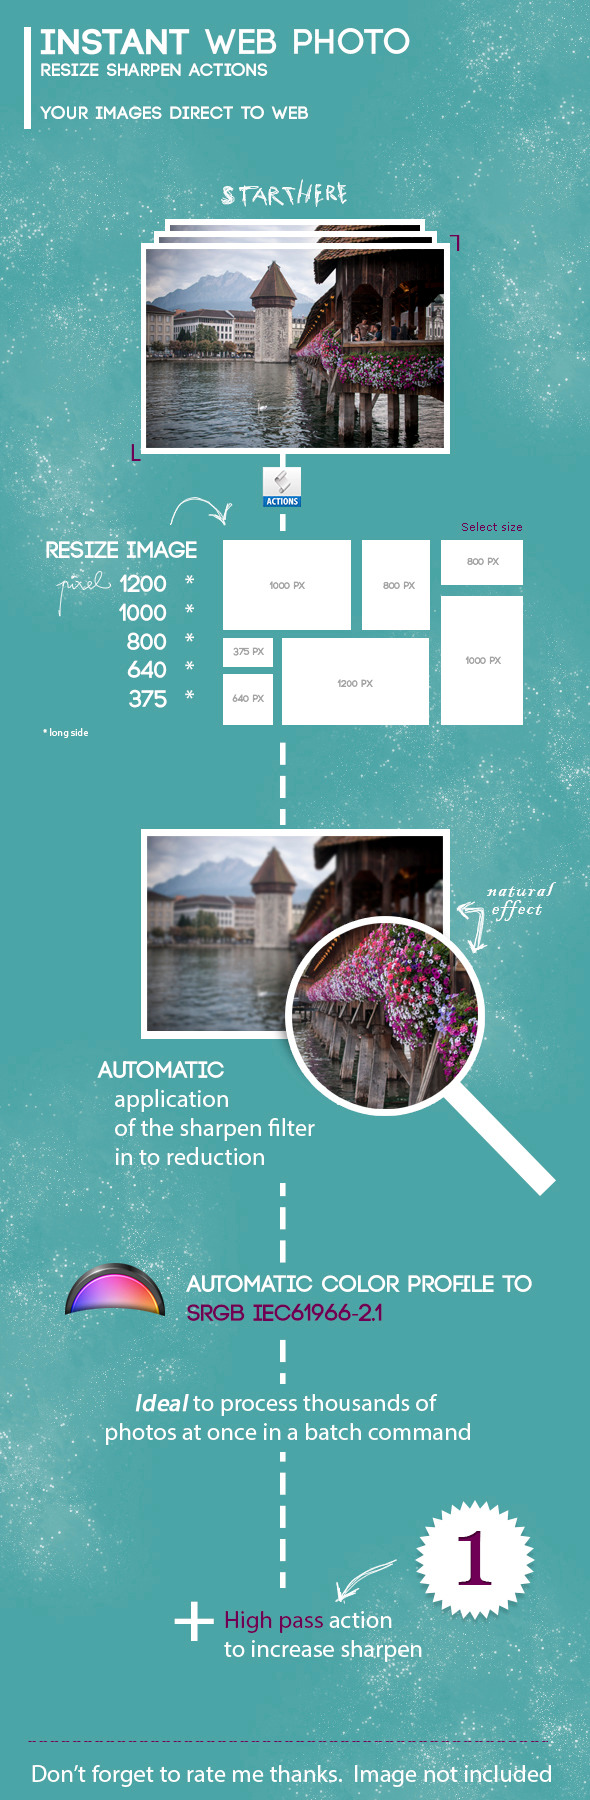 Resizing Photo Sharpen Actions for Web